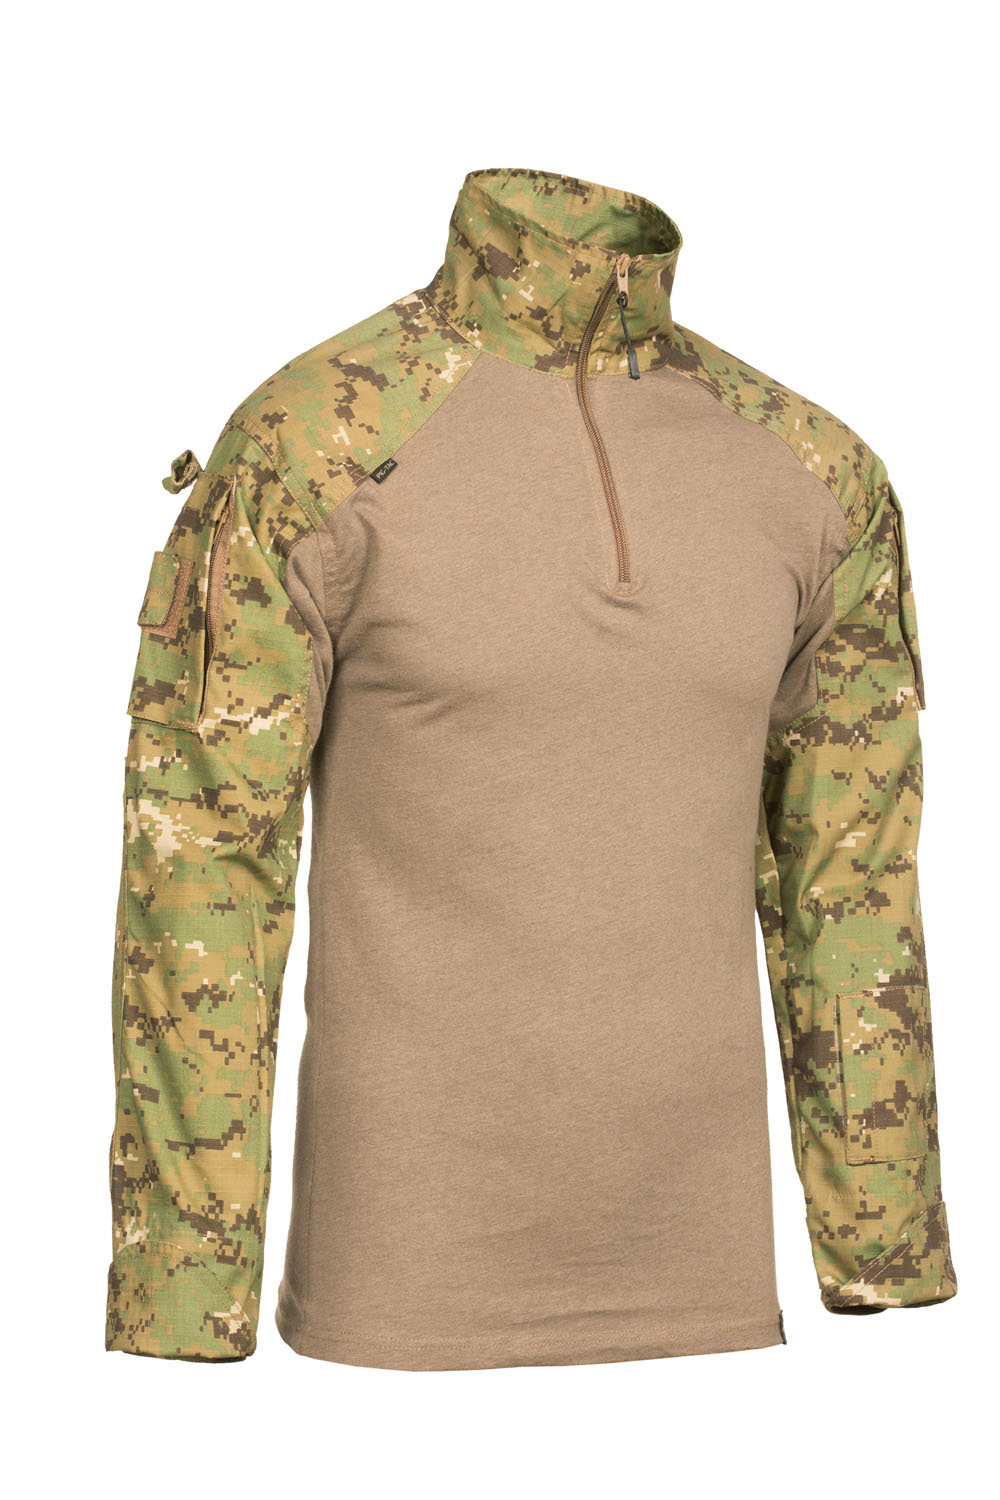 Combat field shirt for hot climates